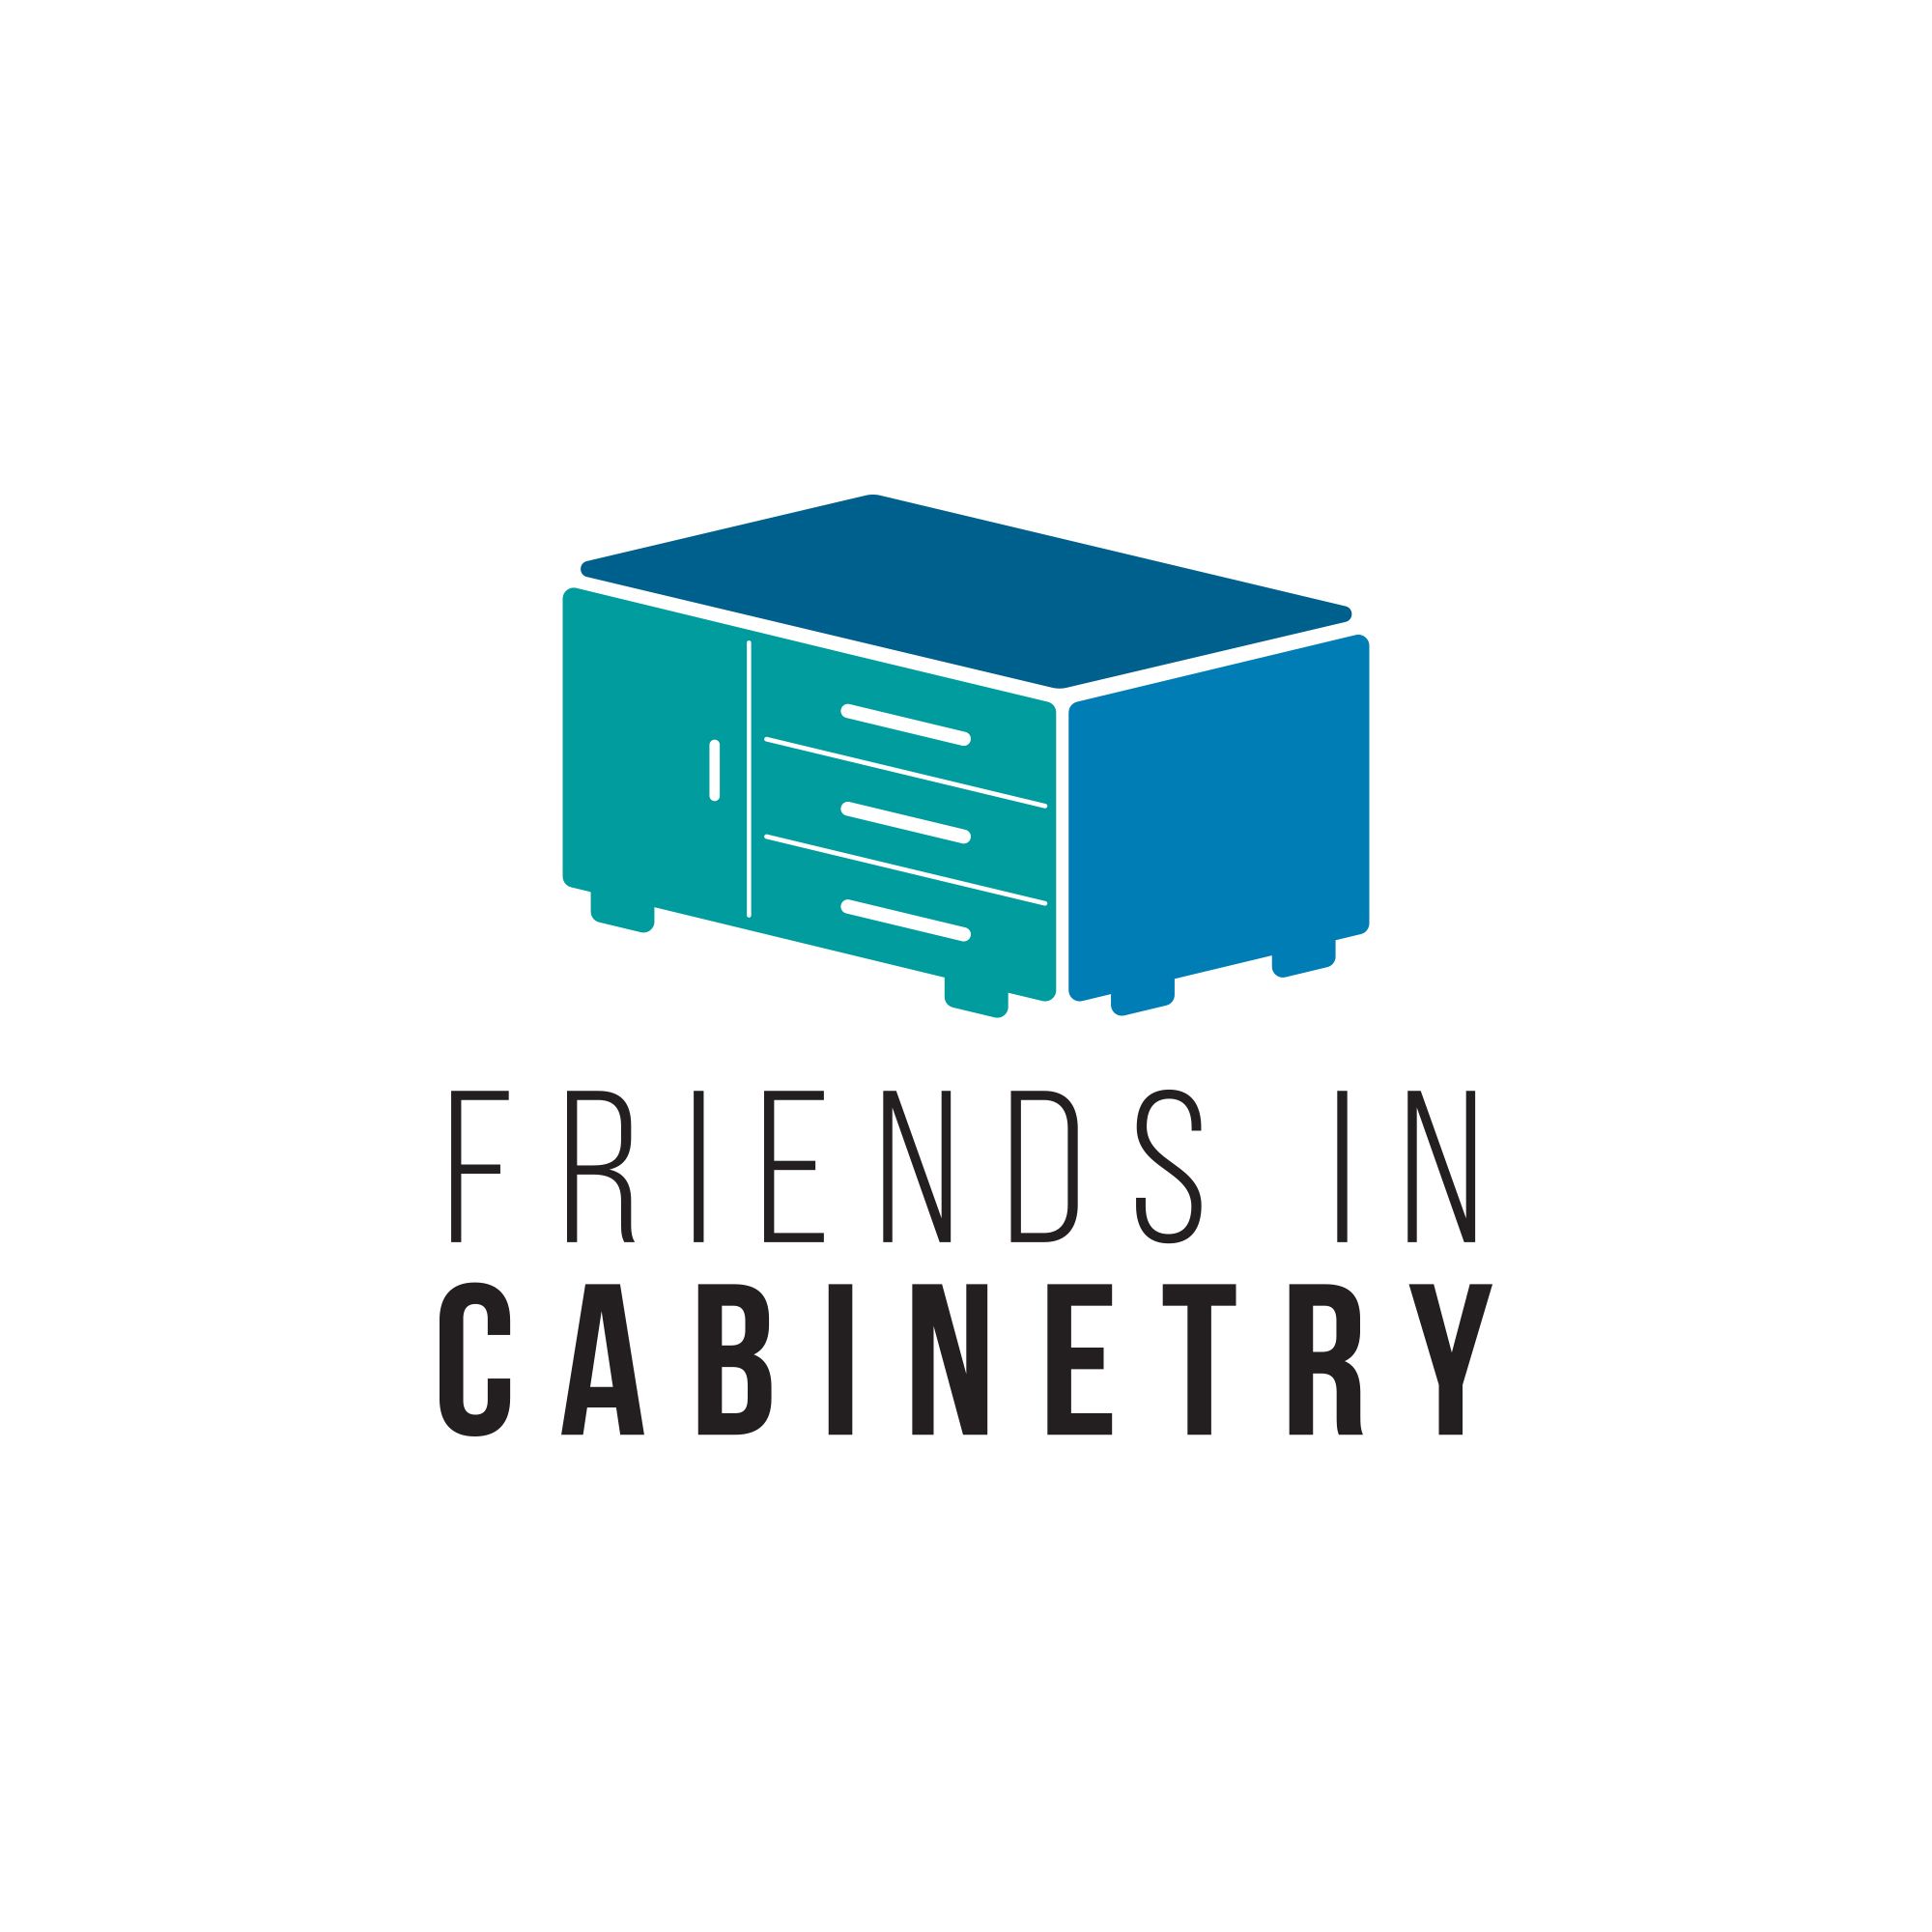 Friends in Cabinetry